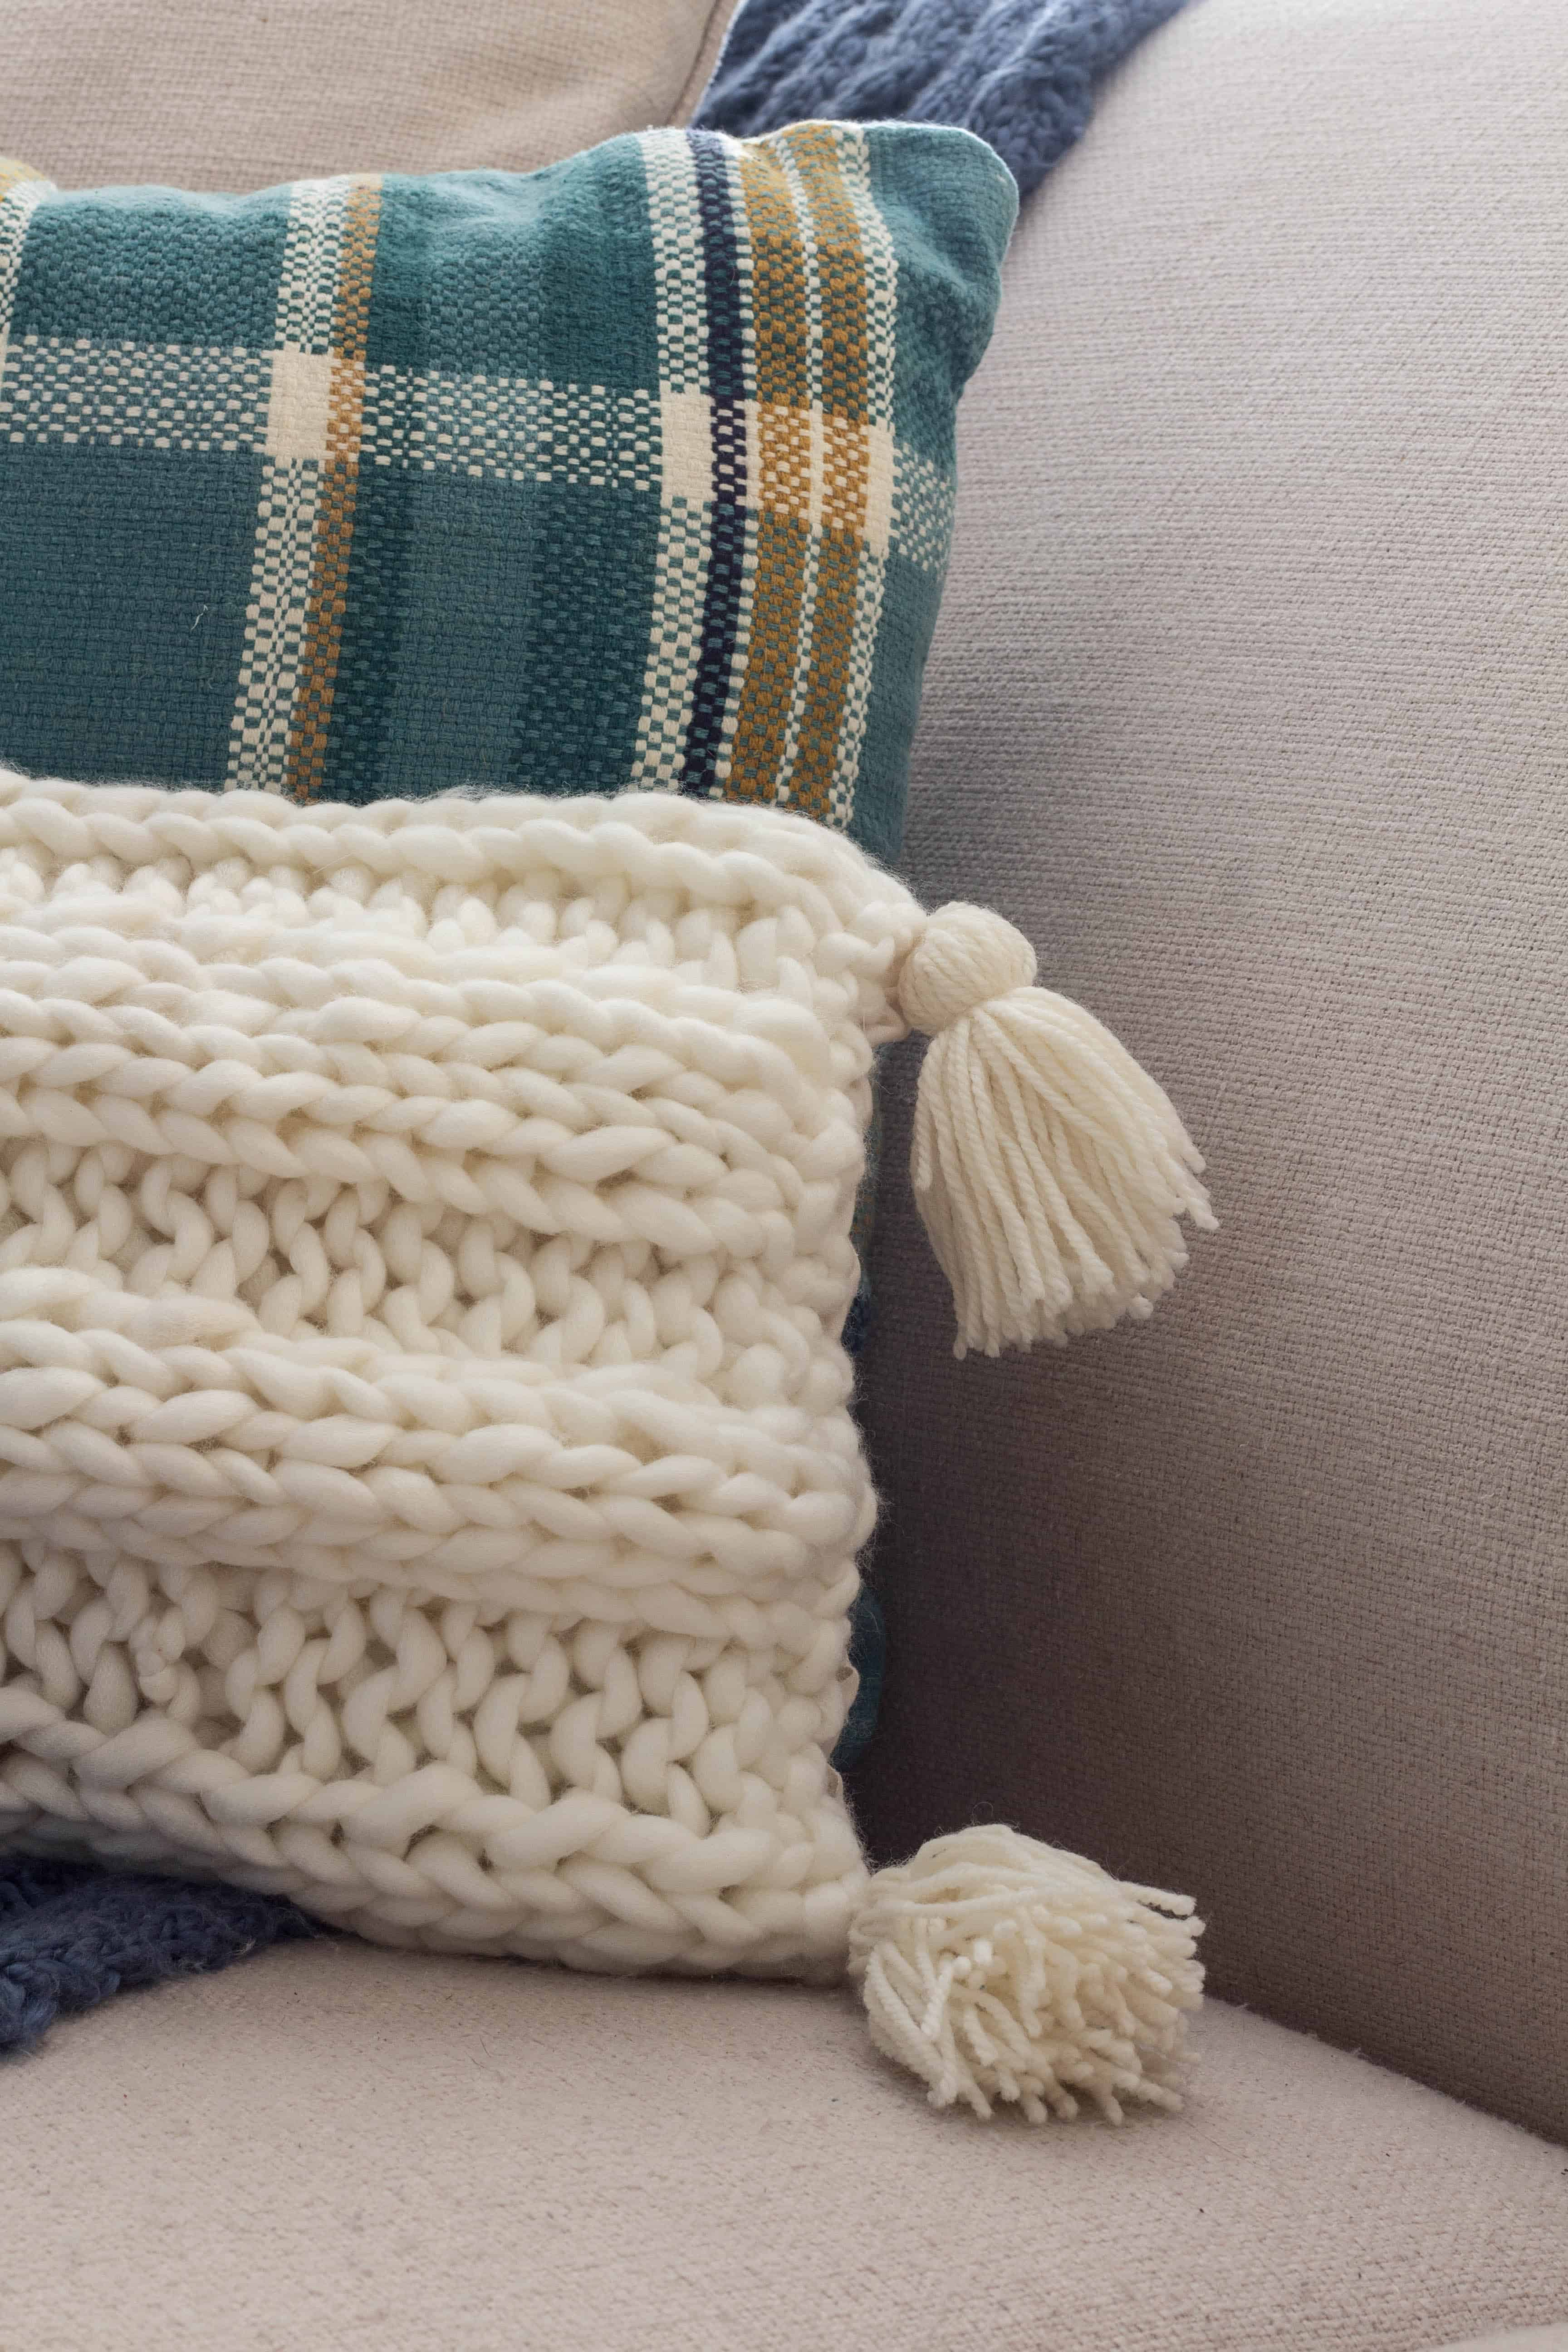 Tassels for the knitted pillow.